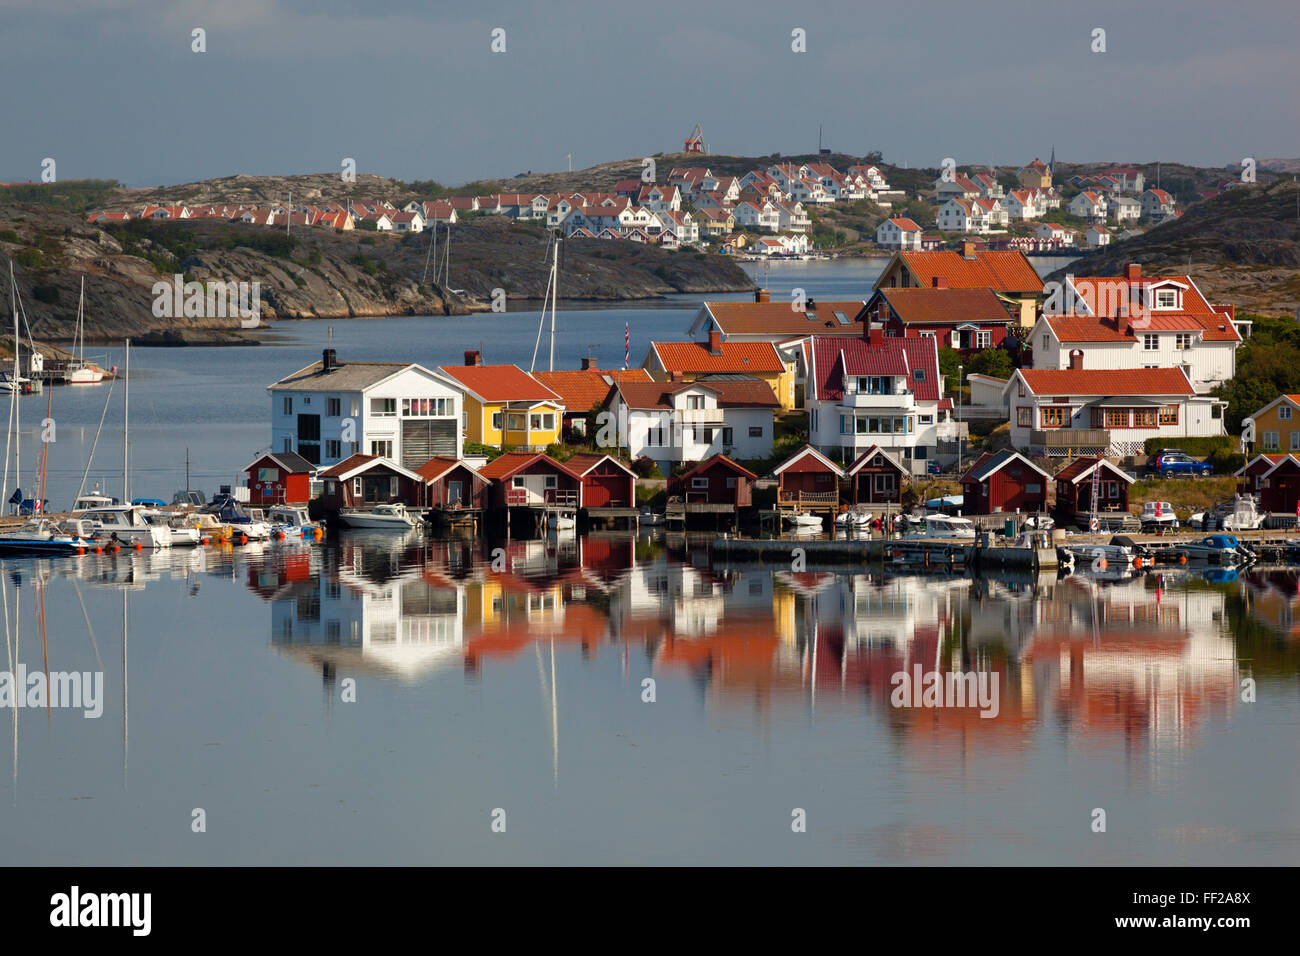 View over harbour and houses, Stocken, Orust, BohusRMan Coast, Southwest Sweden, Sweden, Europe - Stock Image